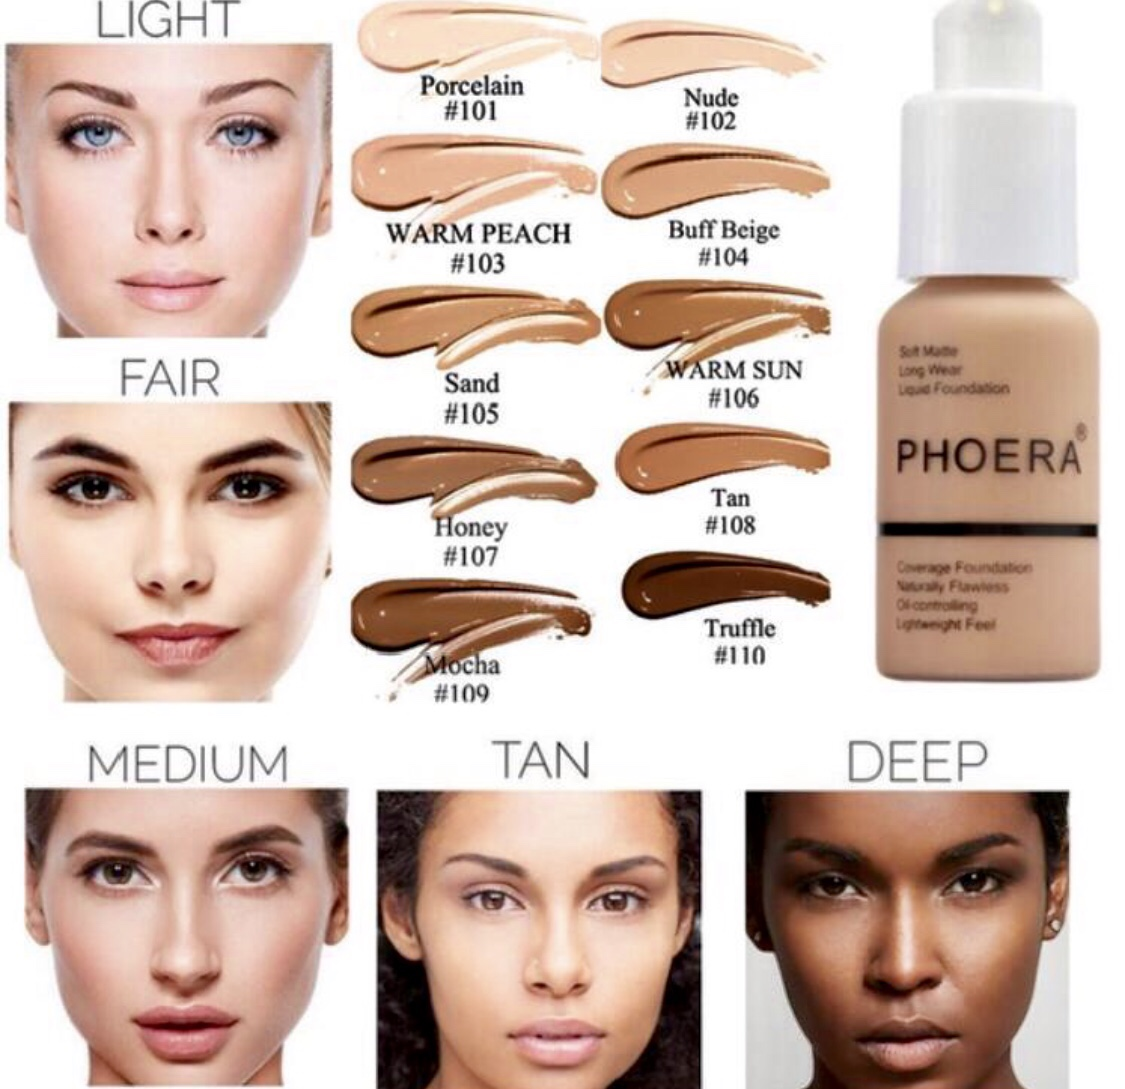 Full Coverage Foundation - Phoera  - choice  your shade